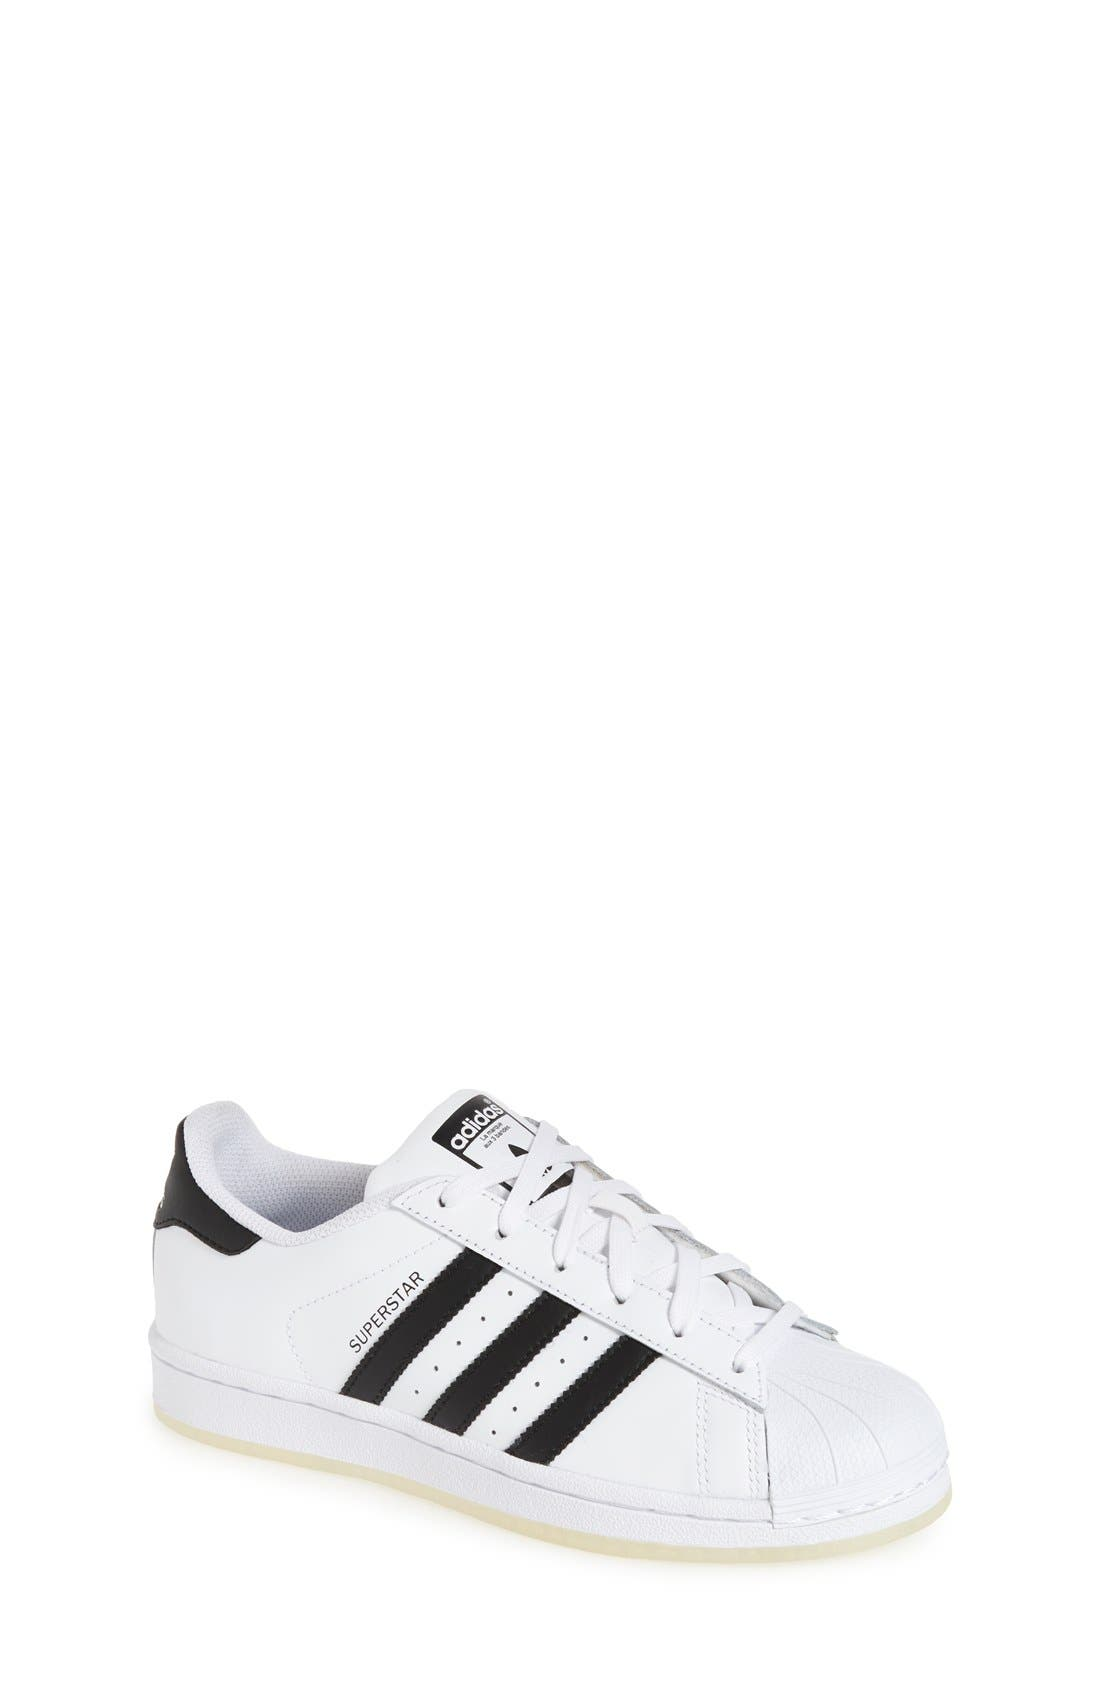 Main Image - adidas Superstar Ice Sneaker (Big Kid)